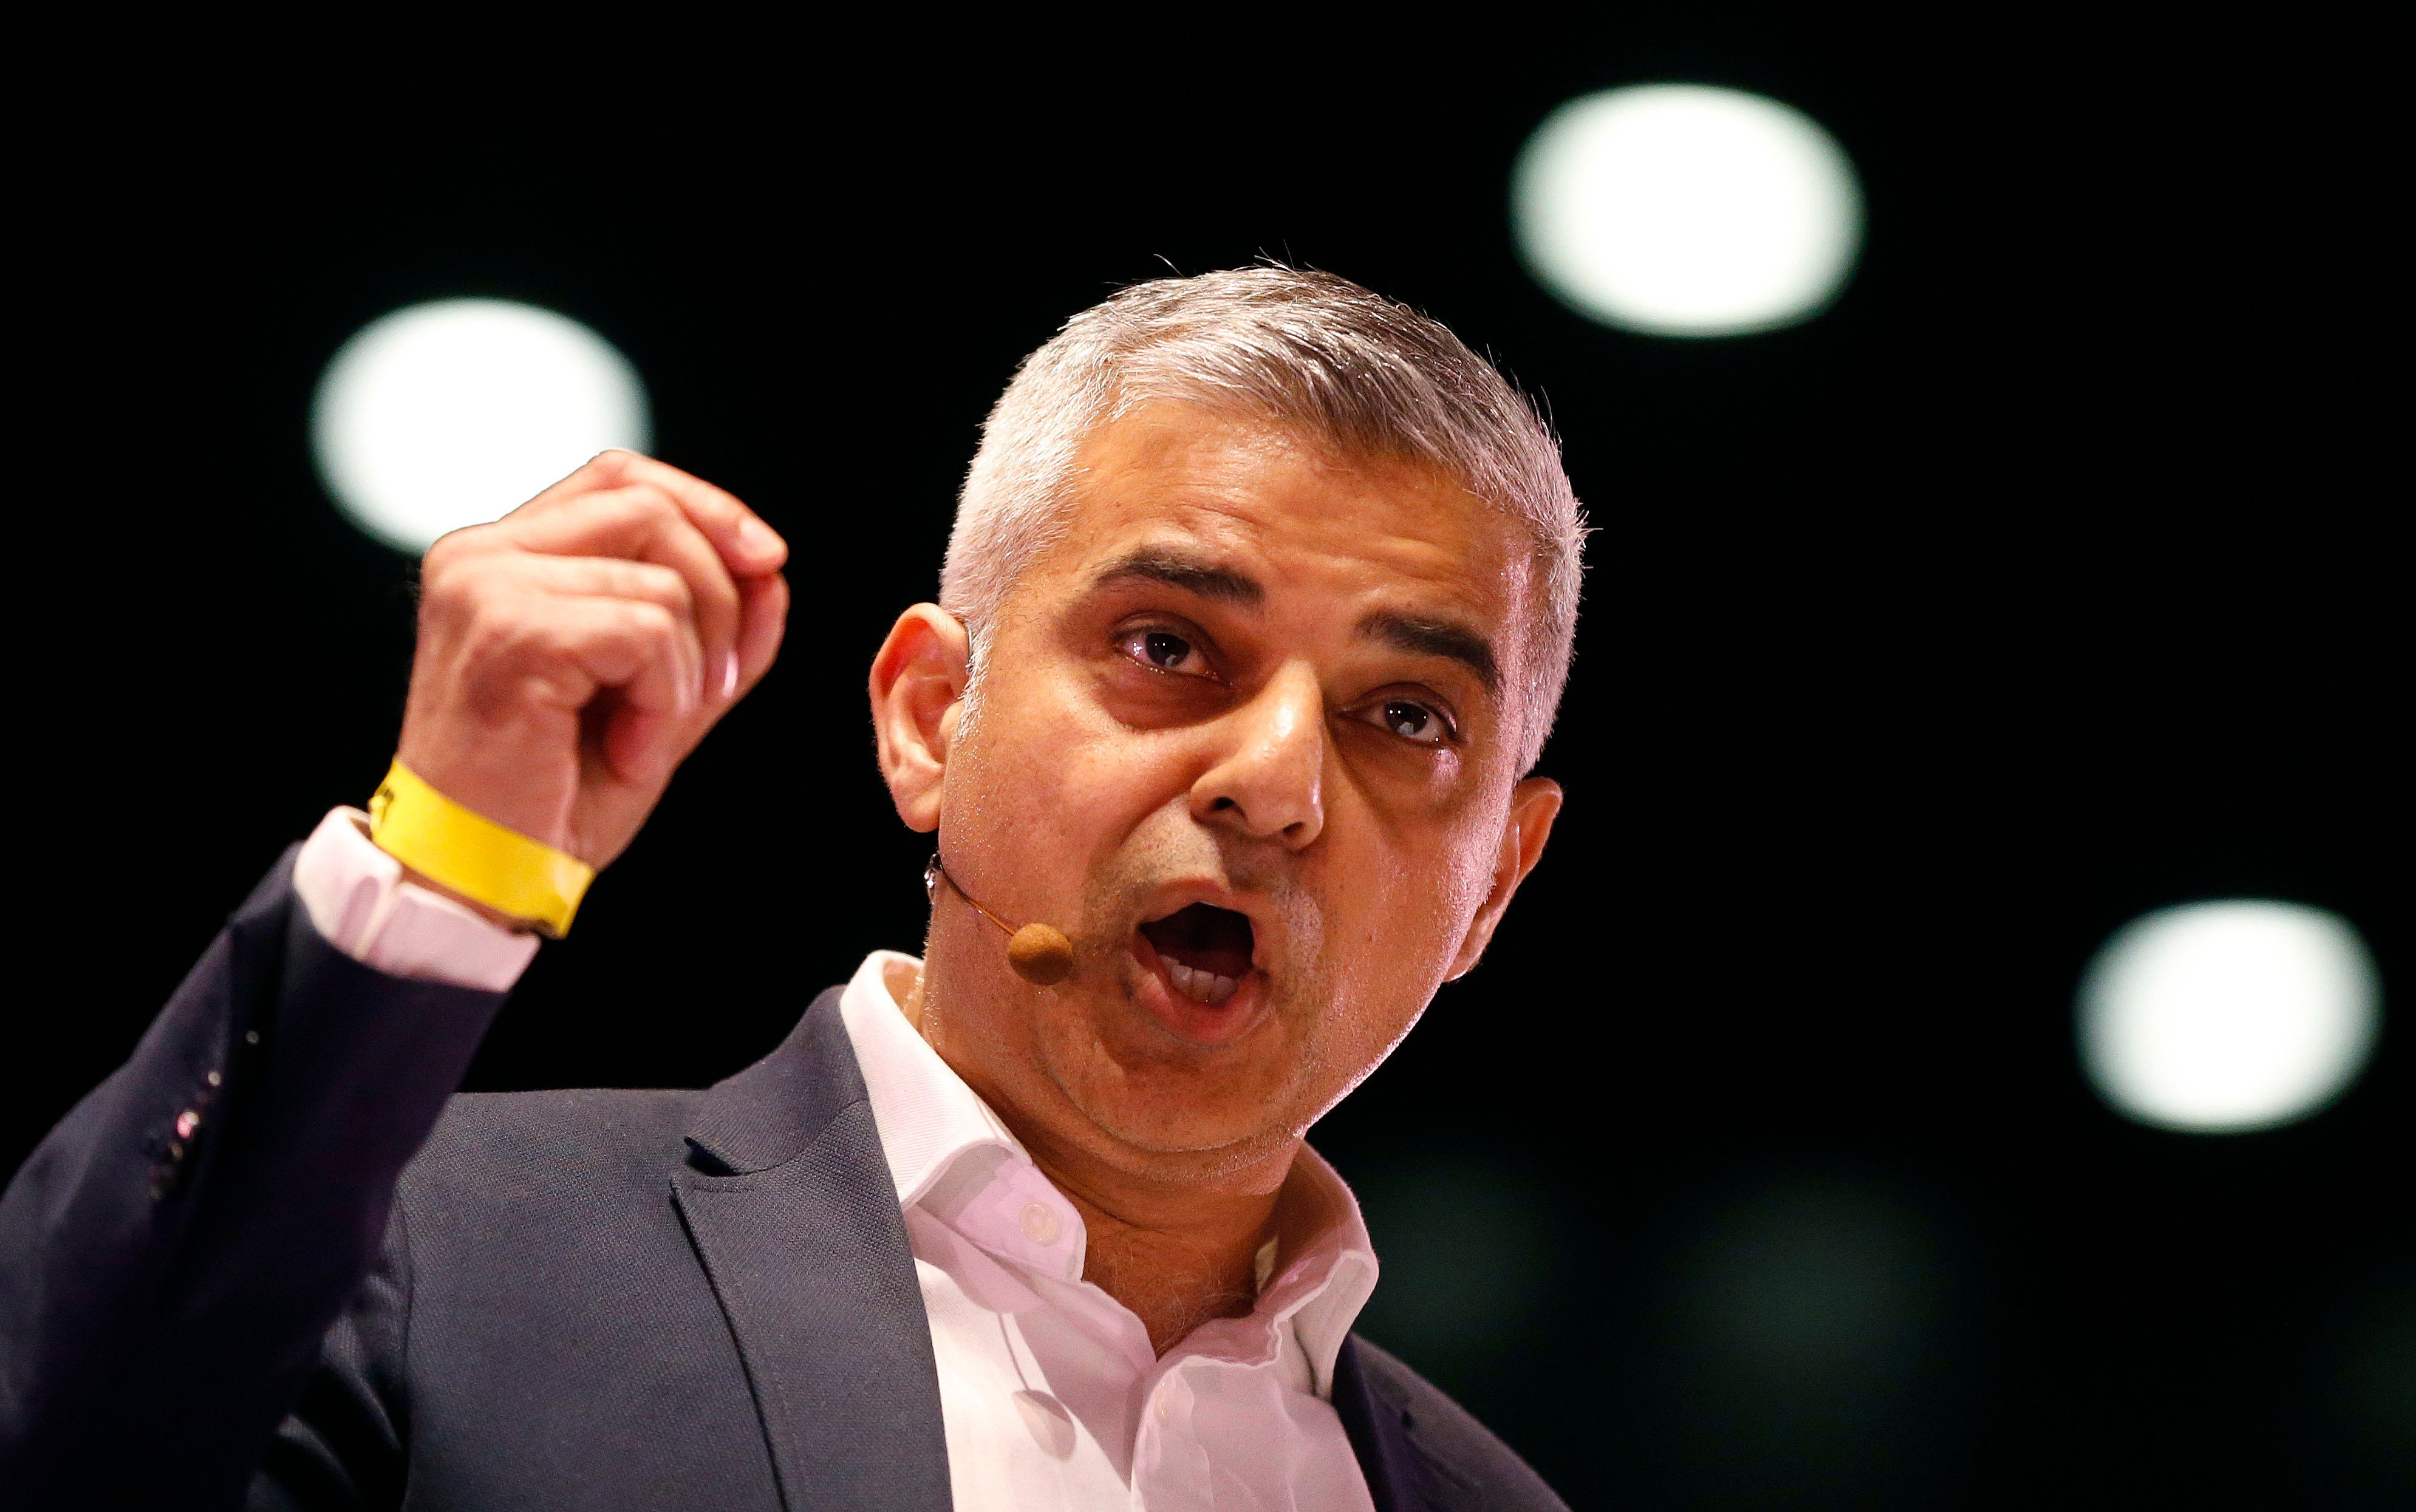 Sadiq Khan sent a strong message to Jeremy